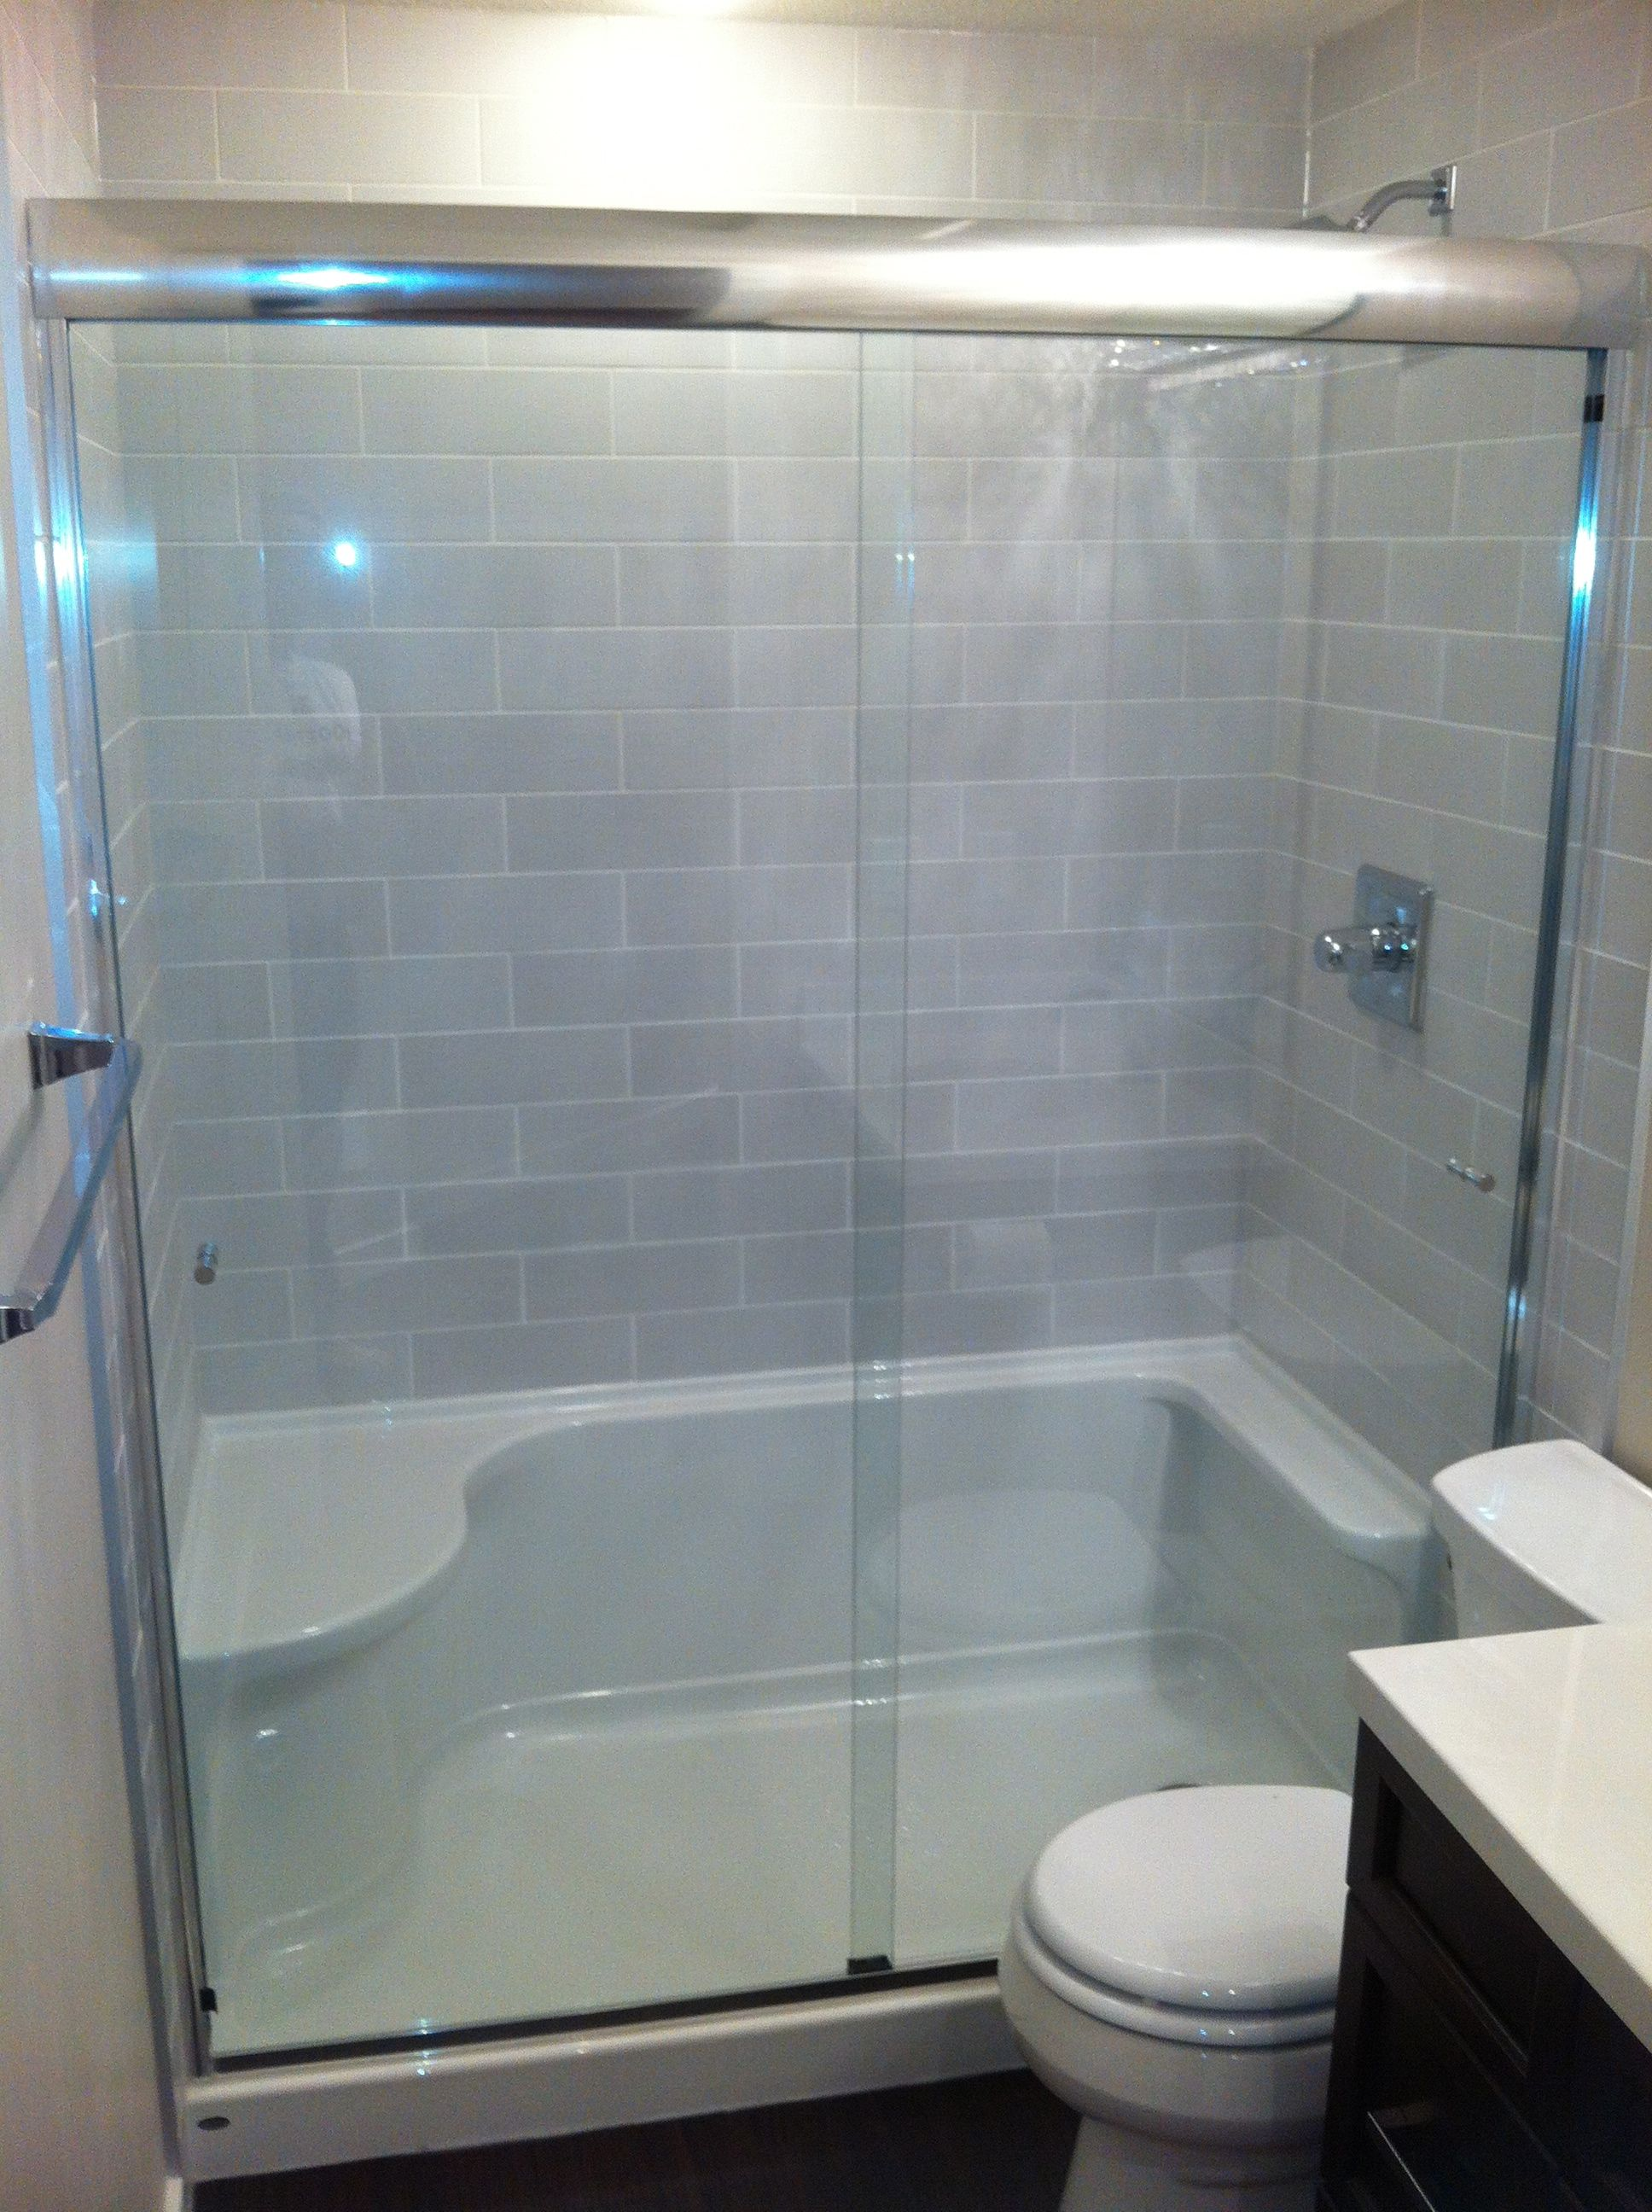 Bathroom showers and tubs - Tile Shower Tub To Shower Conversion Bathroom Renovation